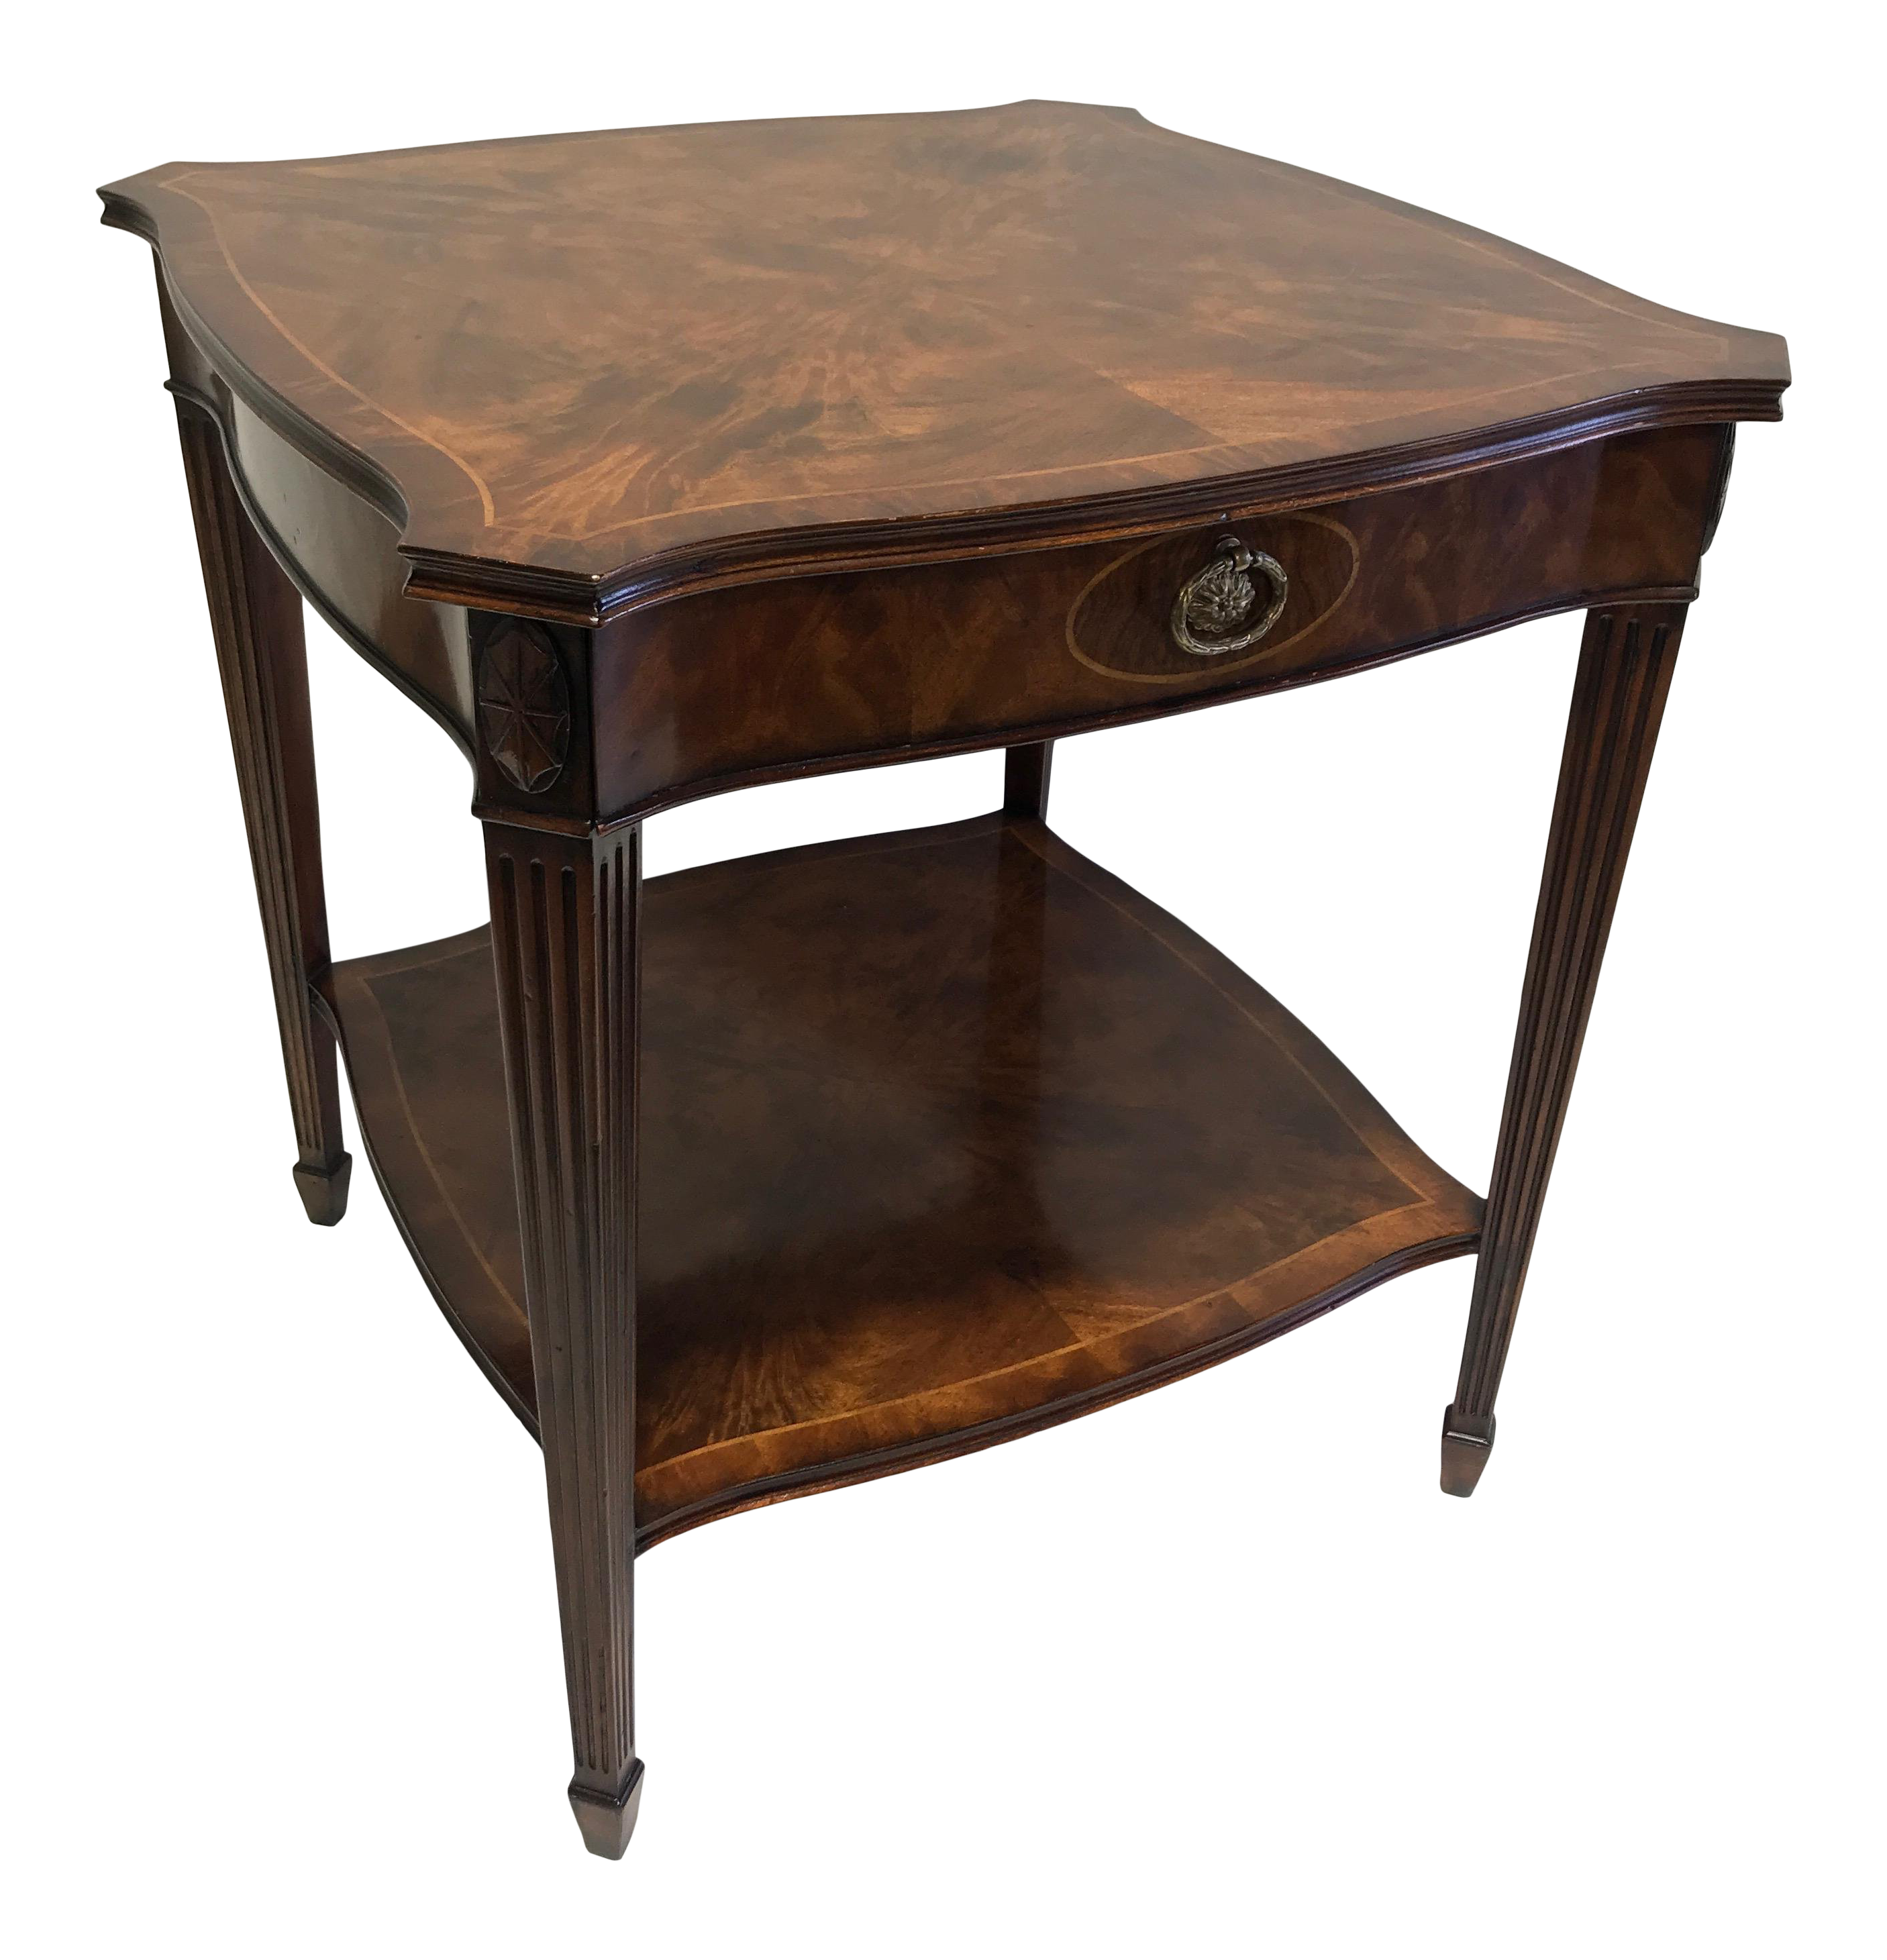 maitland smith for colony furniture aged mahogany inlaid regency end accent table wood inlay chairish dining room centerpieces wellington glass top coffee and tables side chairs